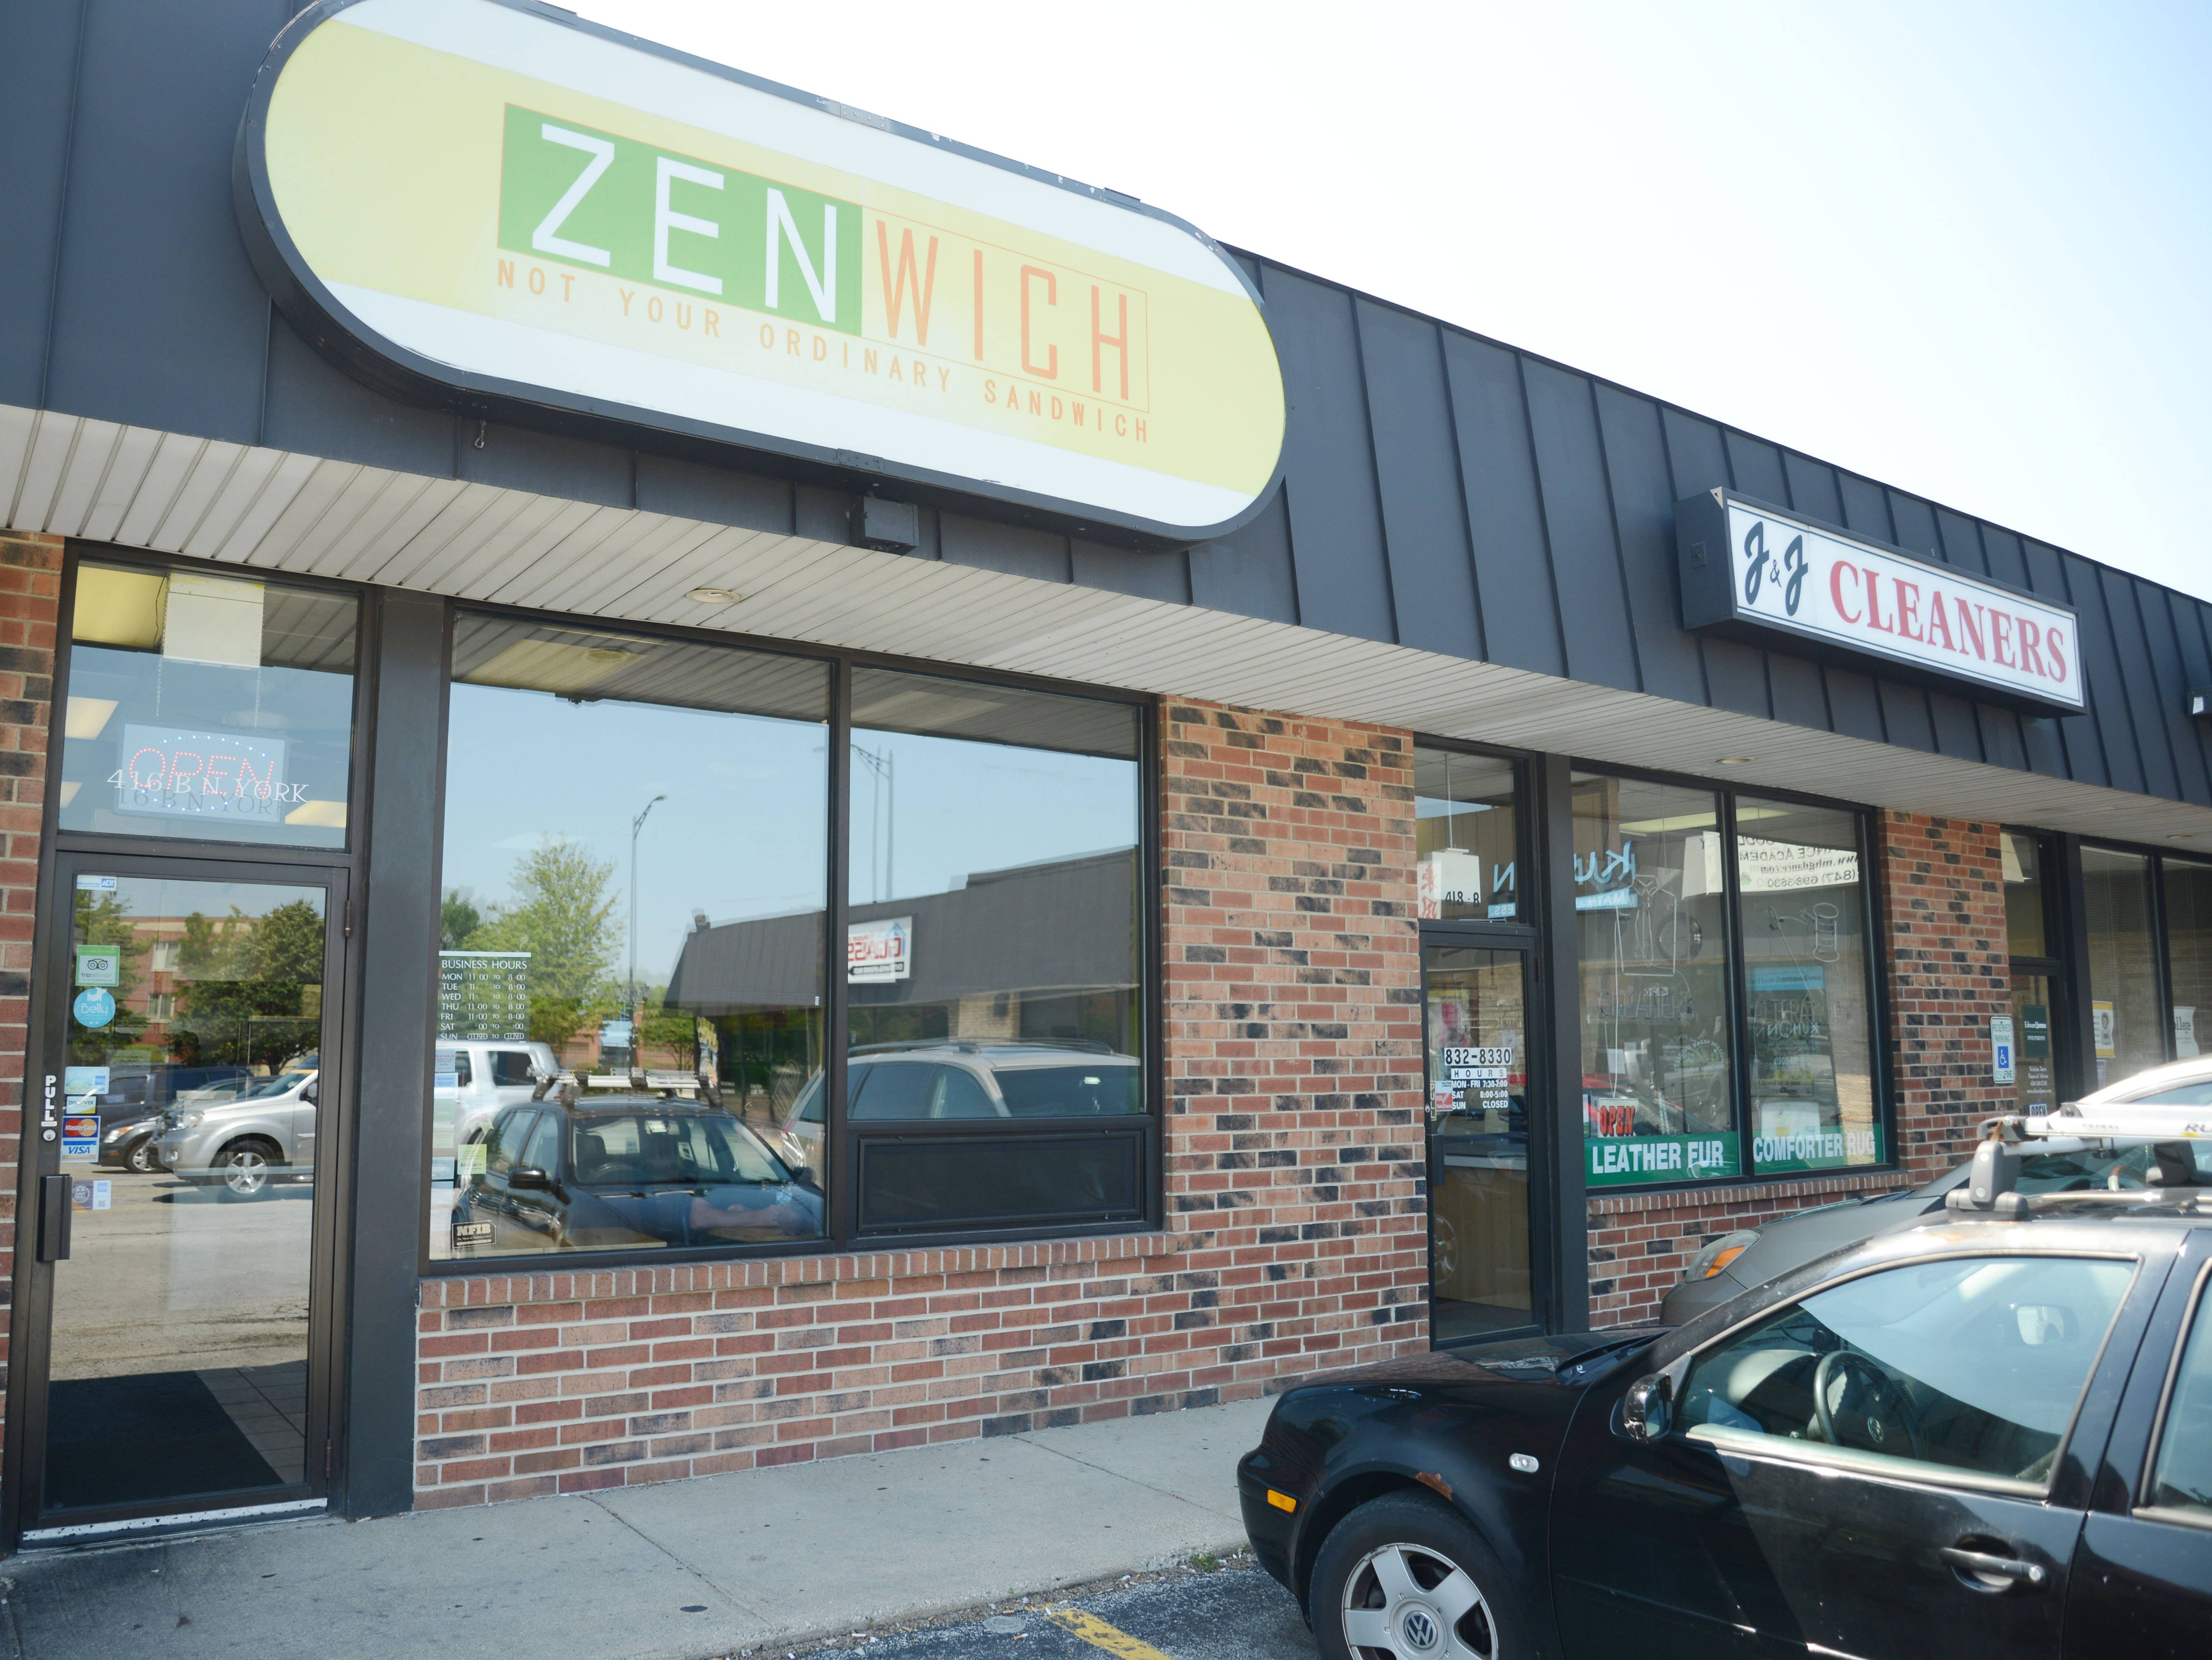 Big, bold, inventive Asian-leaning flavors come from Zenwich, a tiny sandwich shop on Elmhurst's north side.